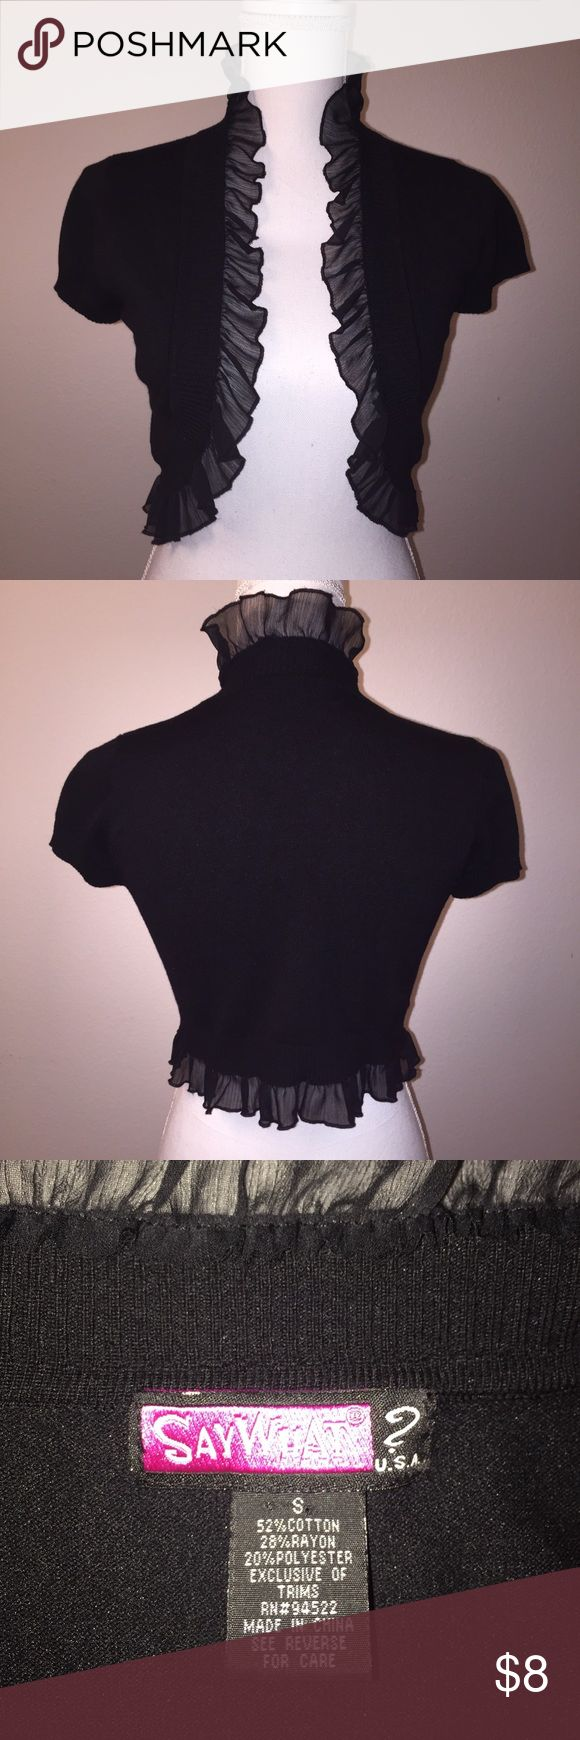 Say What? Black Ruffled Short Sleeve Shrug Sweater This adorable sweater from Say What? features gorgeous chiffon trim and cinched sleeves. It is size S and is in excellent condition. If you have any questions, please ask! Say What? Sweaters Shrugs & Ponchos